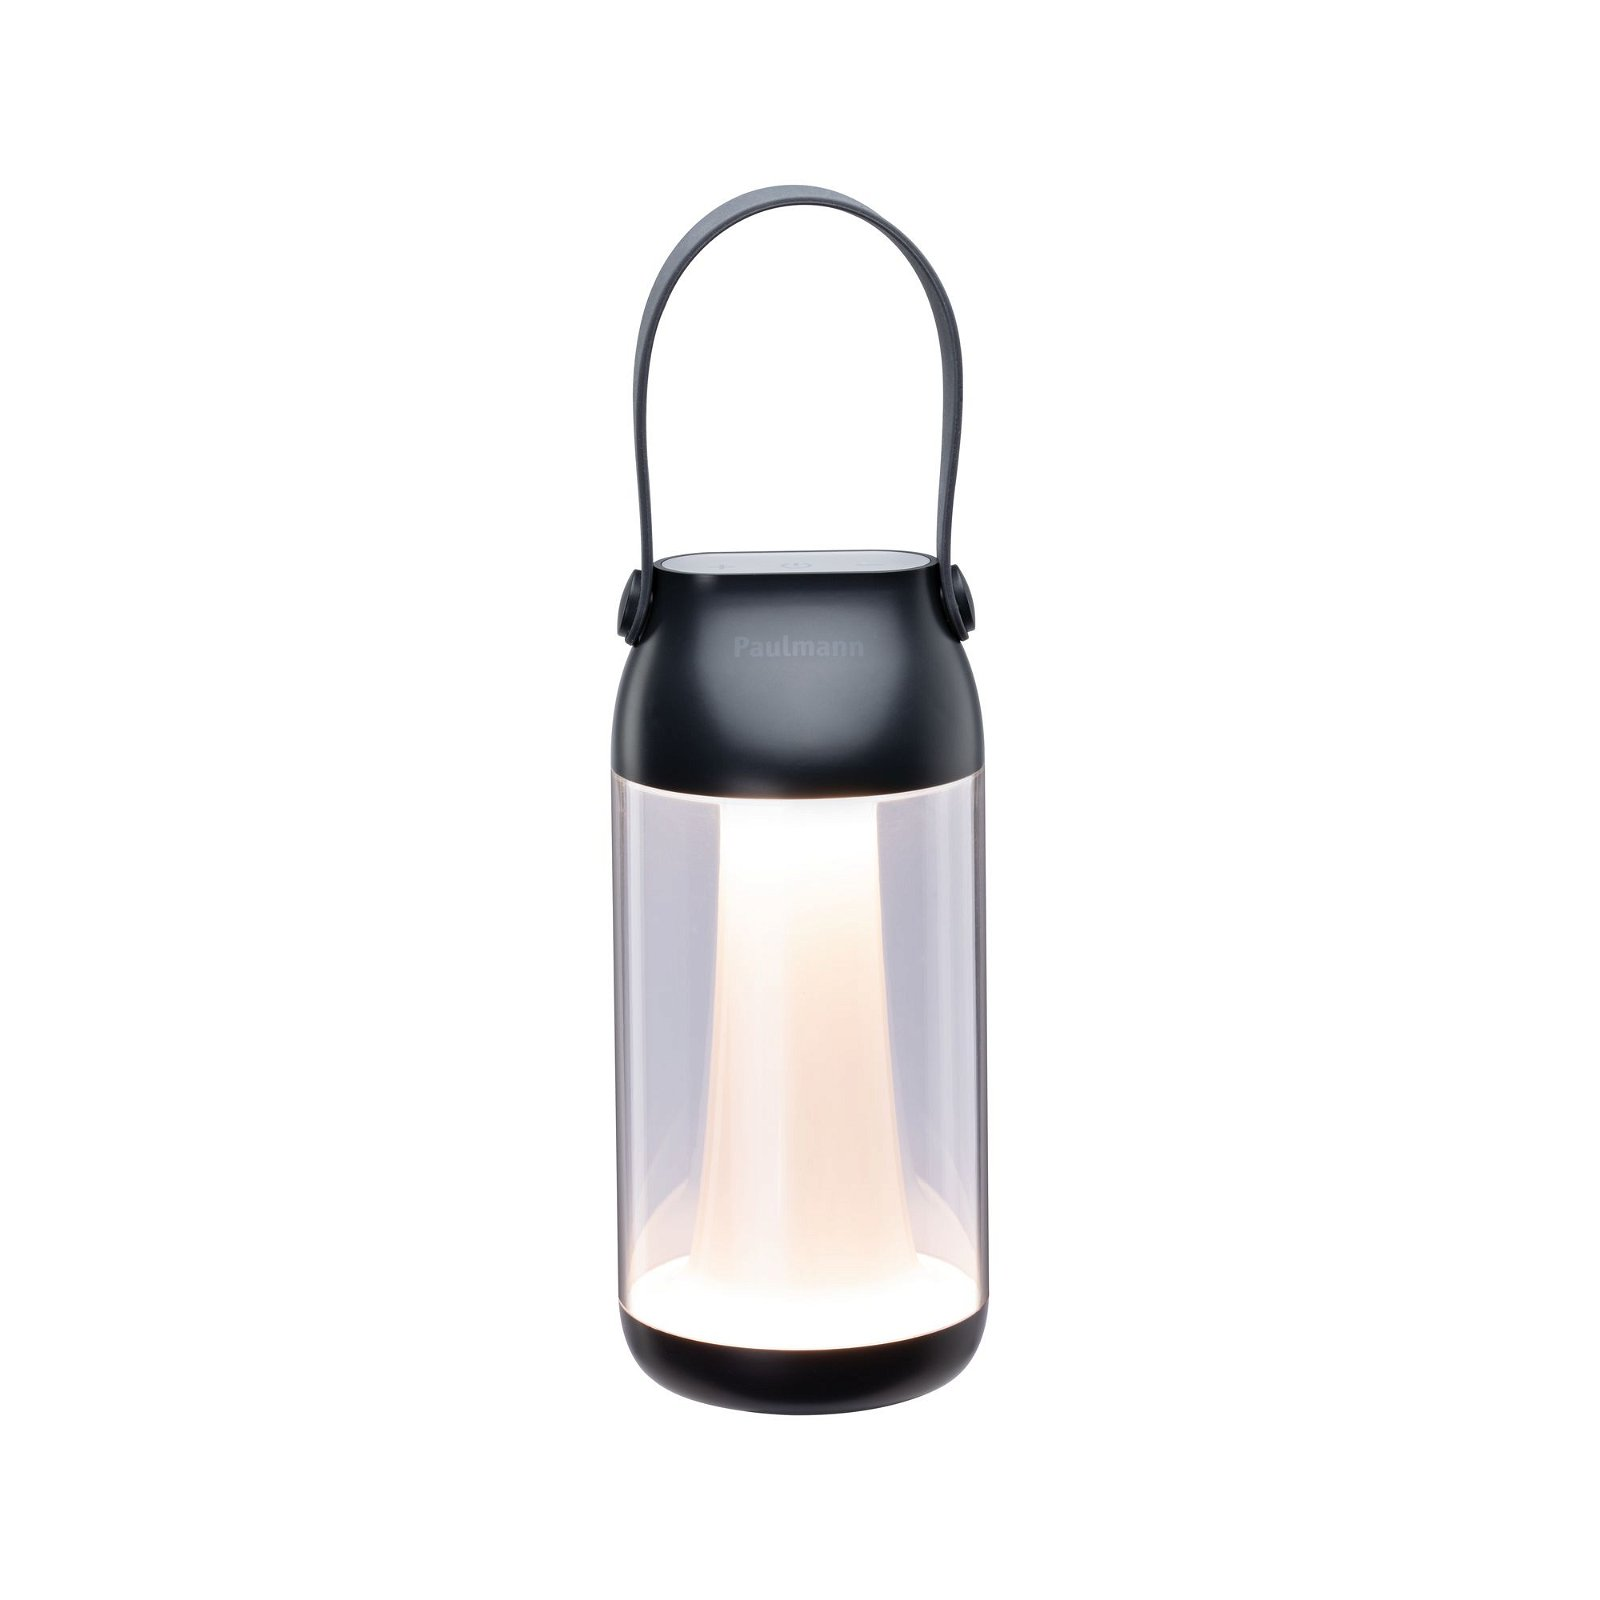 Luminaire rechargeable Cupulino IP44 3000K Transparent/Anthracite